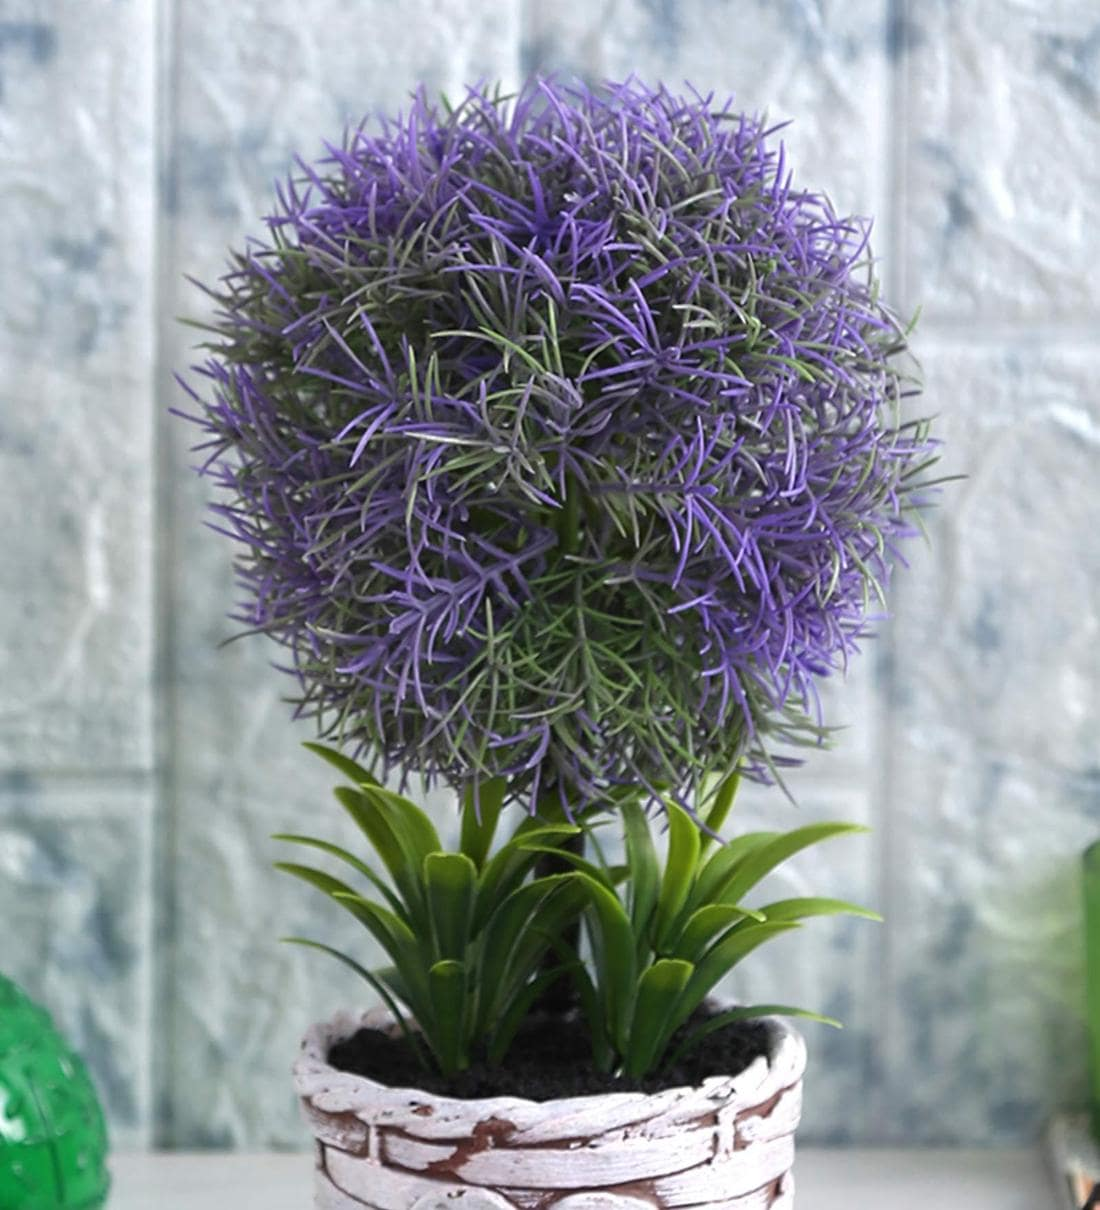 Buy Purple Soft Touch Artificial Topiary Plant In A Ceramic Pot By Fourwalls Online Artificial Plants Artificial Plants Home Decor Pepperfry Product